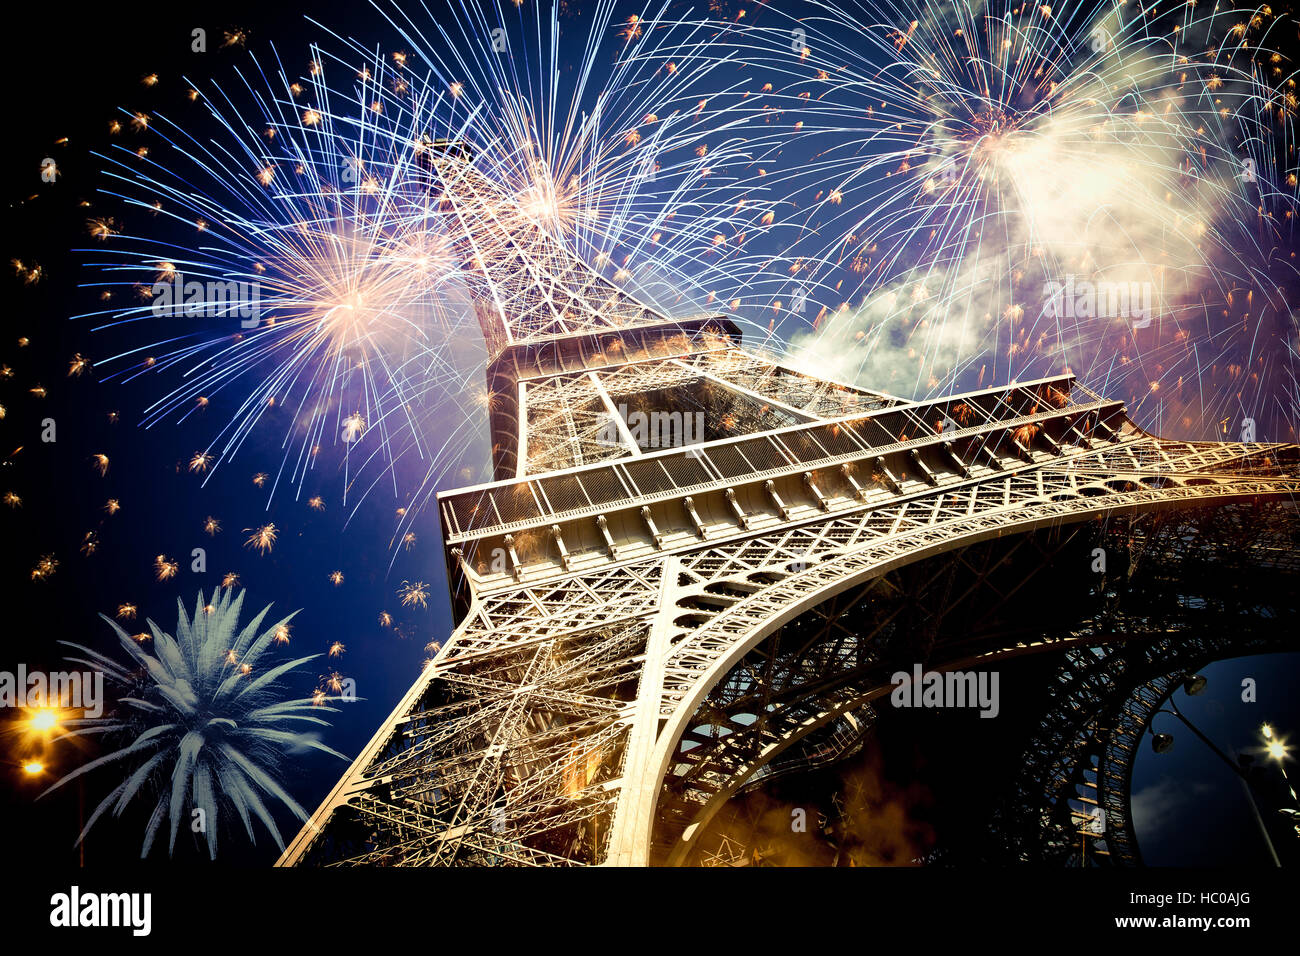 abstract background of eiffel tower with fireworks paris france new year